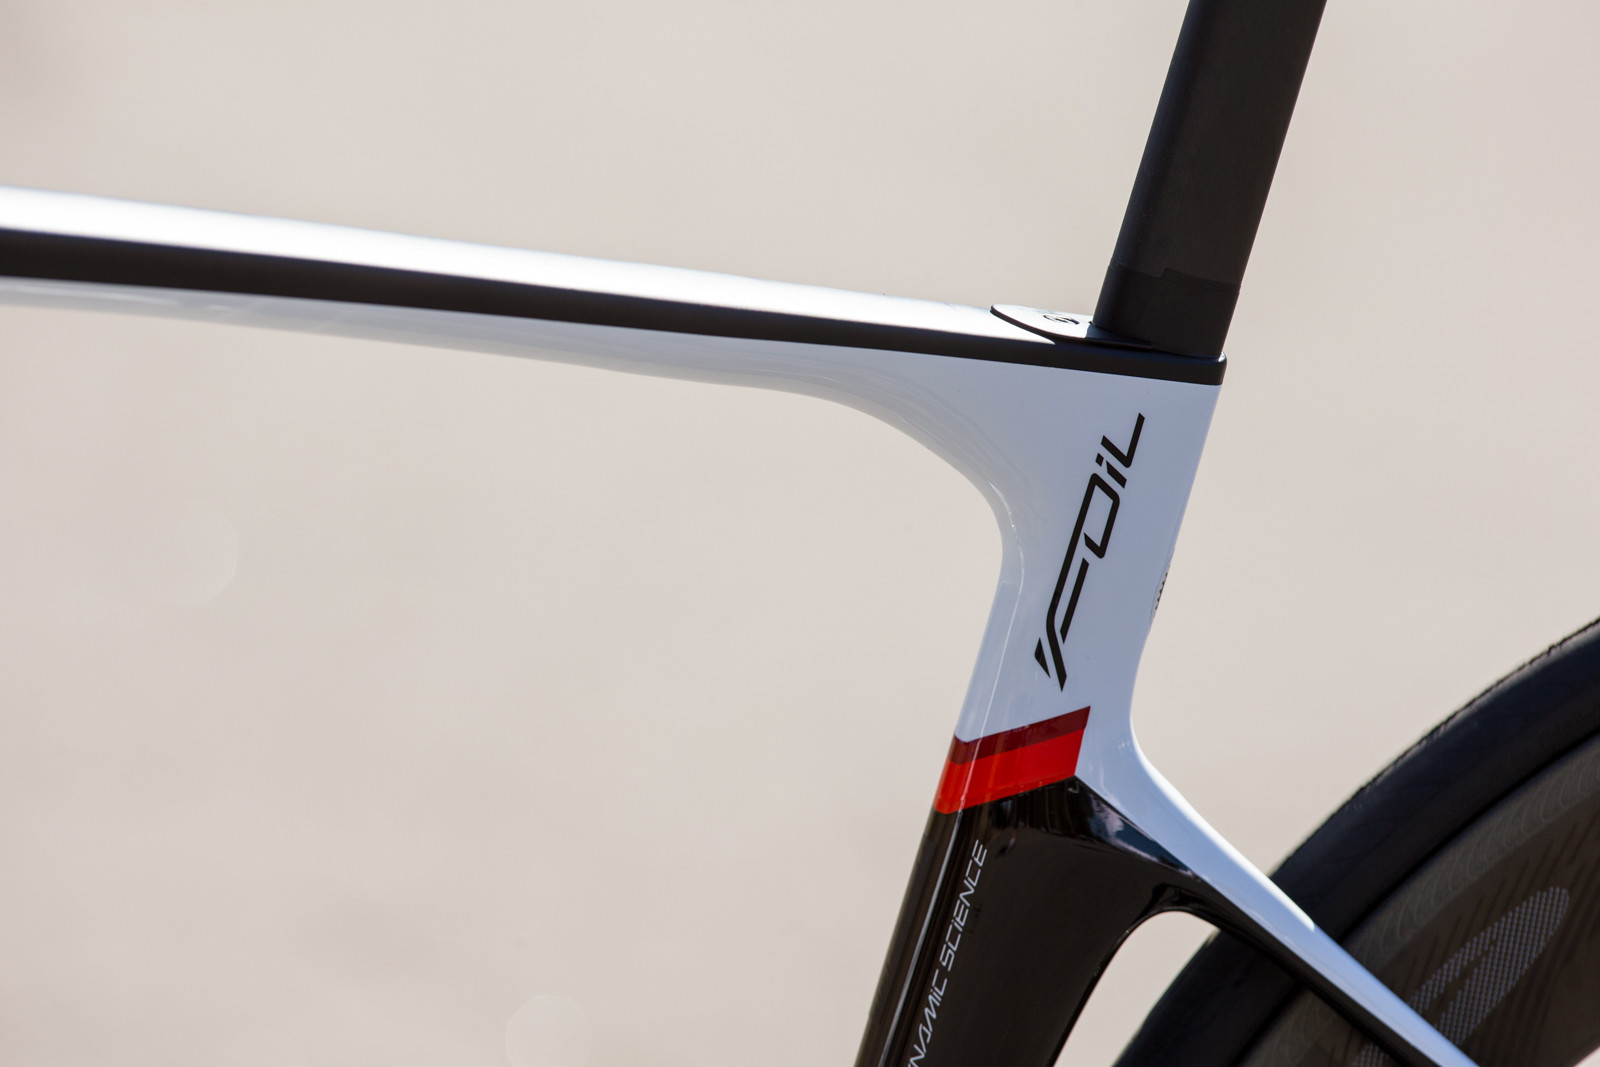 The Foil is Scott's Aero class road bike. Aero bikes typically add a little weight compared to a climbing bike, as they use longer and more aerodynamic extrusions to cut through the wind.